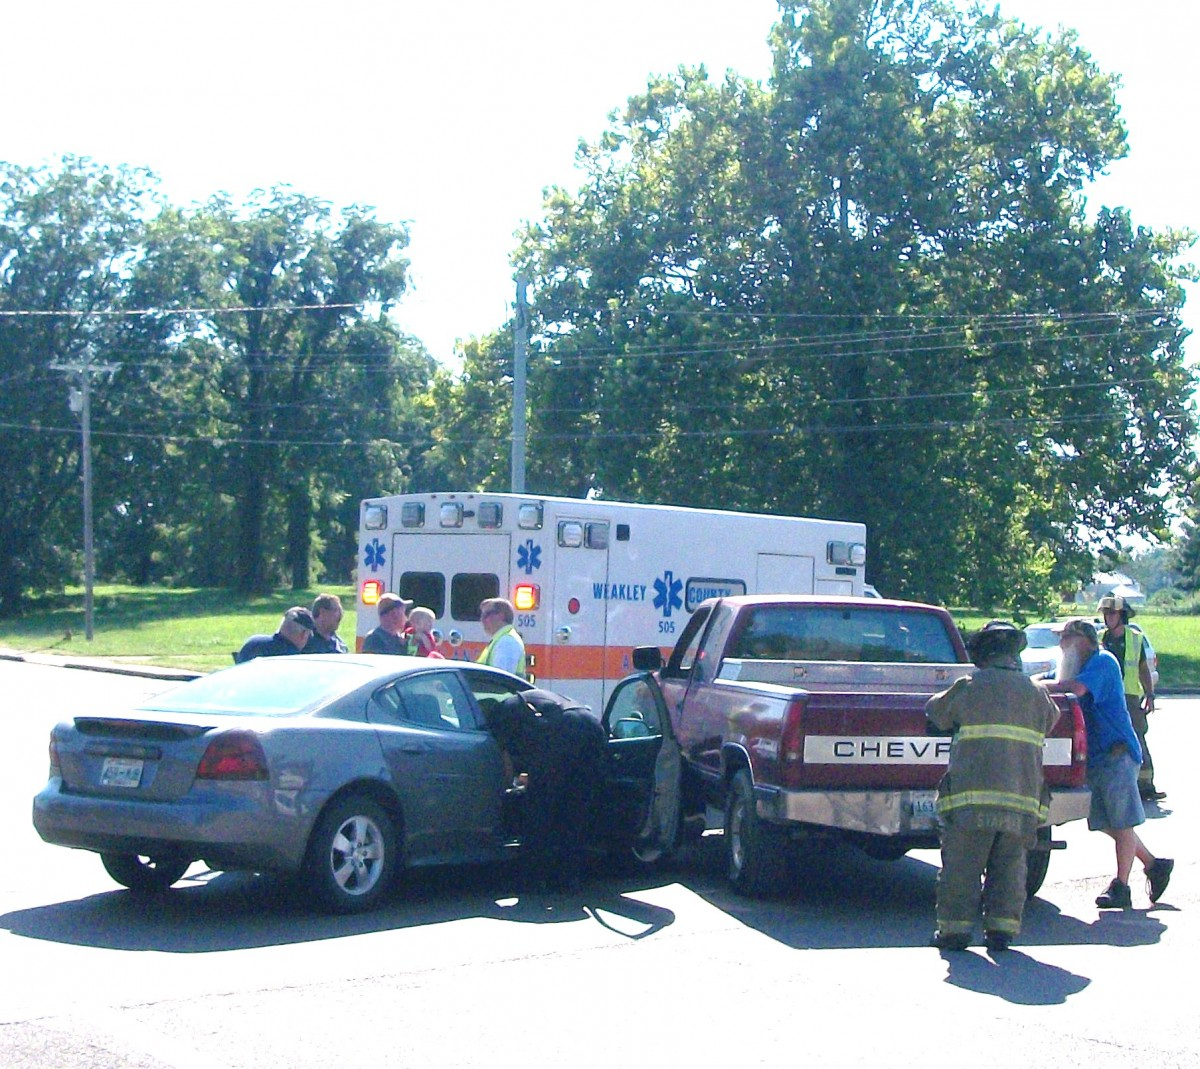 Minor Injuries Reported In Two-car Collision